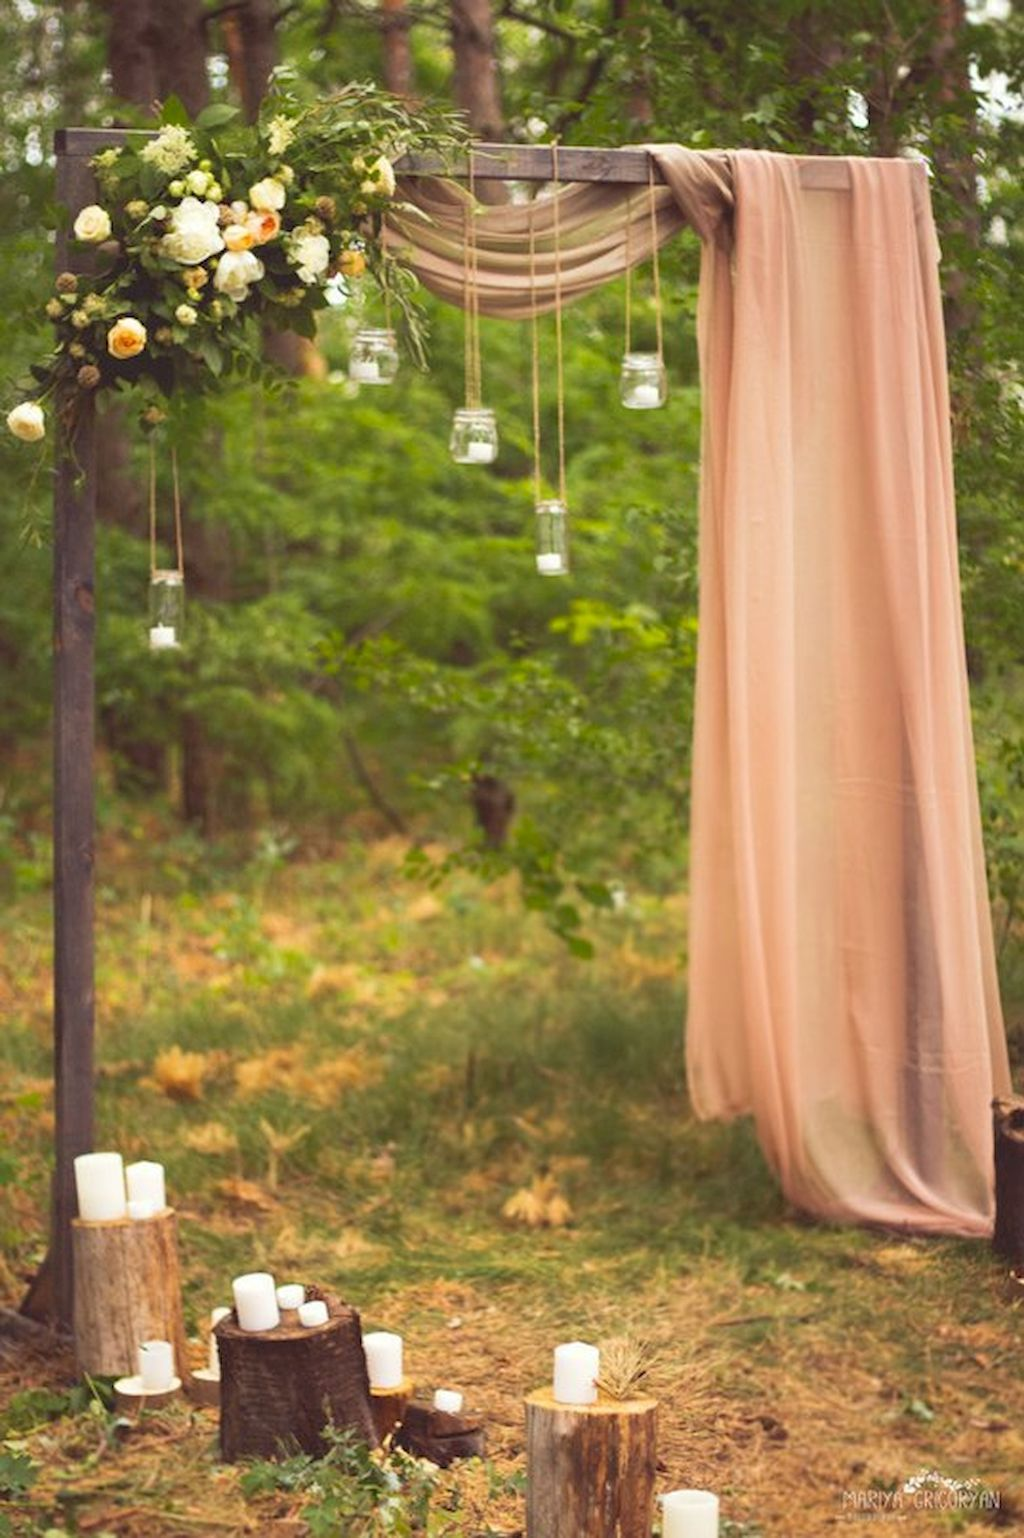 48 elegant outdoor wedding decor ideas on a budget budgeting 48 elegant outdoor wedding decor ideas on a budget floral weddingsimple wedding archsimple junglespirit